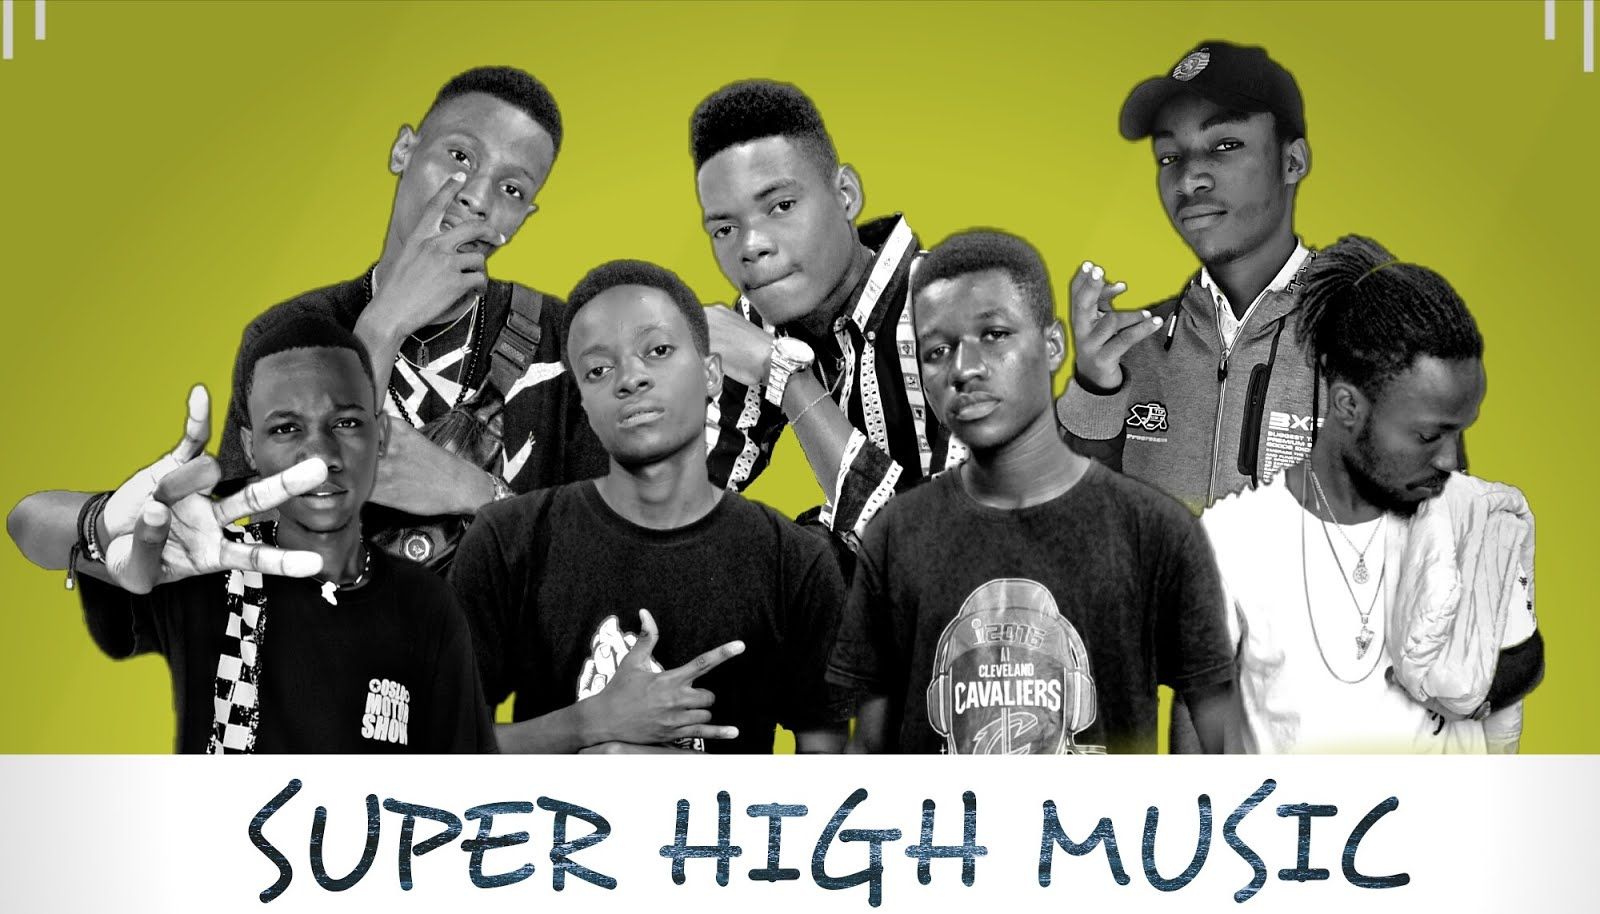 SUPER HIGH MUSIC